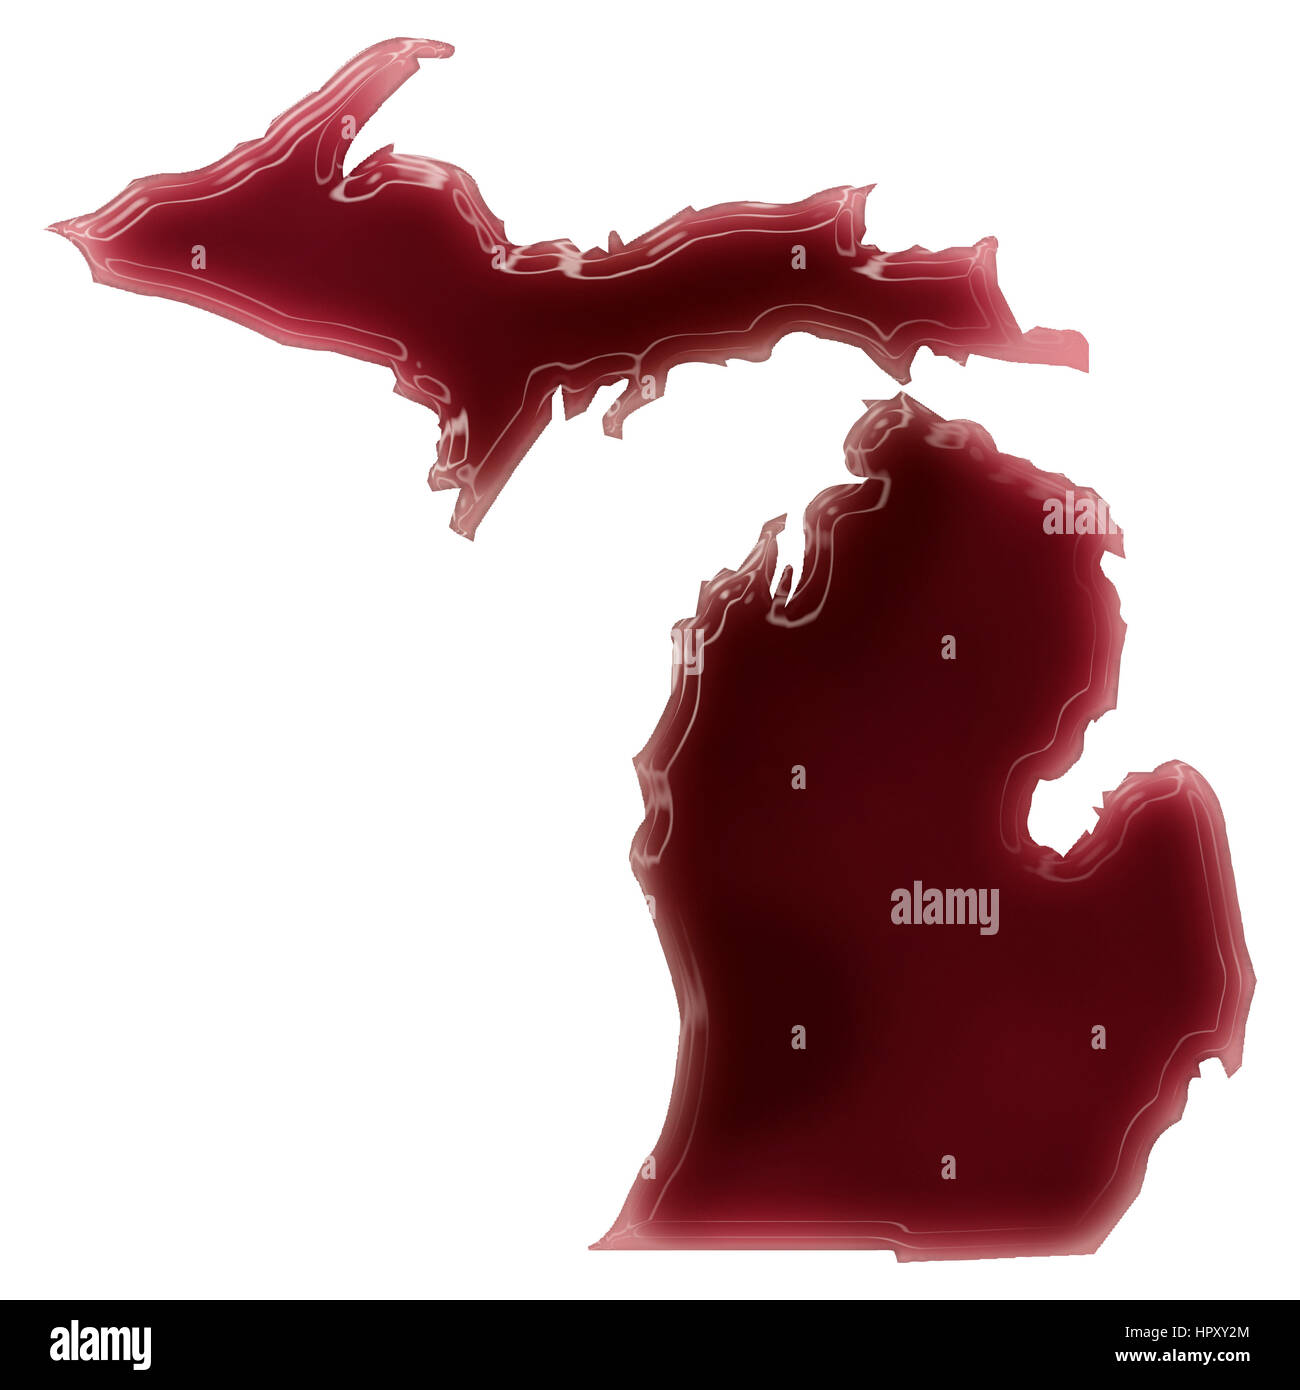 Outline Map State Michigan Map Stock Photos & Outline Map State ...